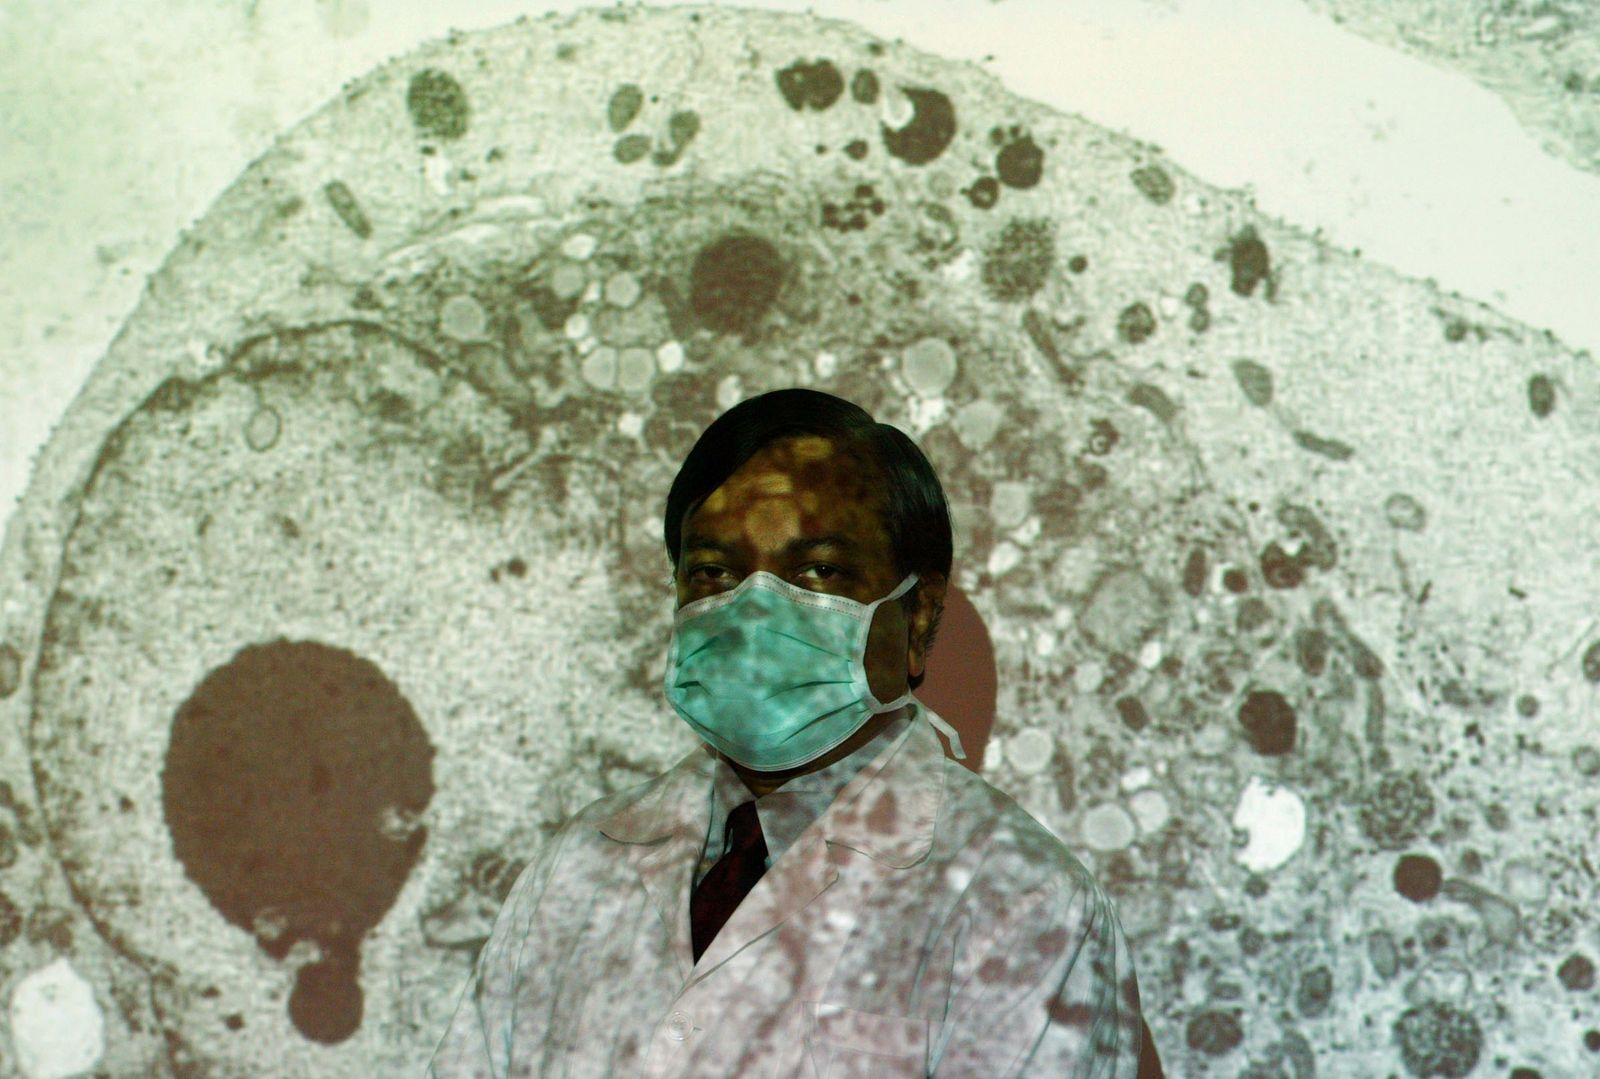 PROFESSOR PEIRIS STANDS IN FRONT OF PROJECTION SHOWING INFECTED CELL IN HONG KONG